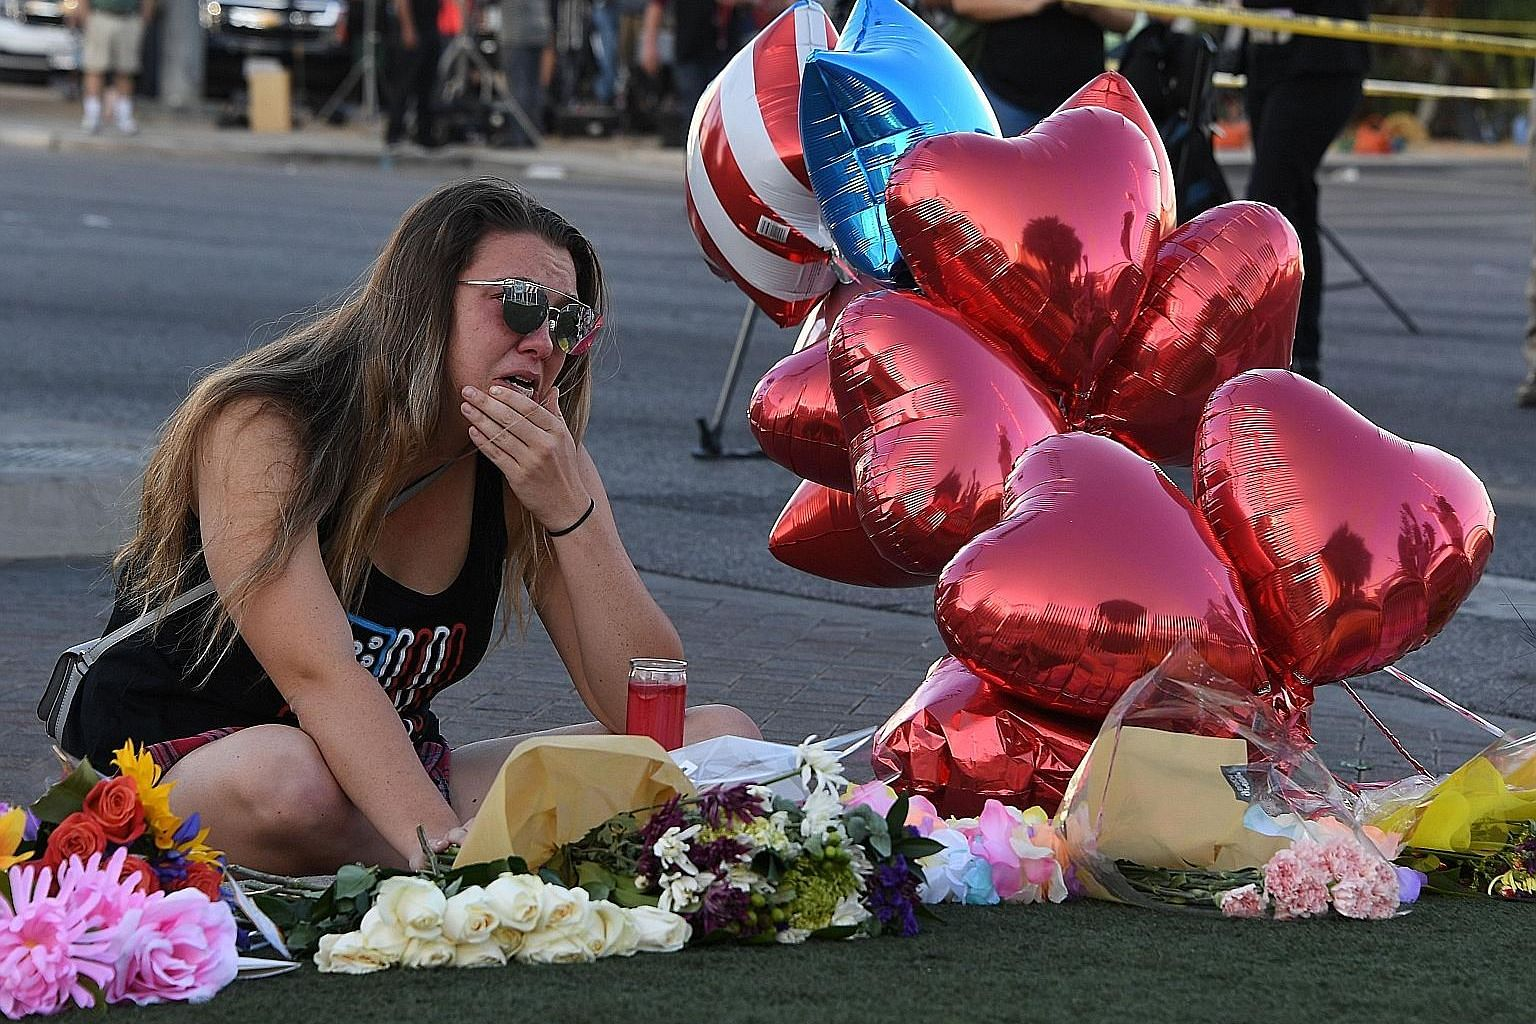 Ms Destiny Alvers, who attended the Route 91 country music festival and helped rescue her friend who was shot, grieving as she sat at a makeshift memorial on the Las Vegas Strip on Tuesday. Investigators are at a loss as to Stephen Paddock's motive f